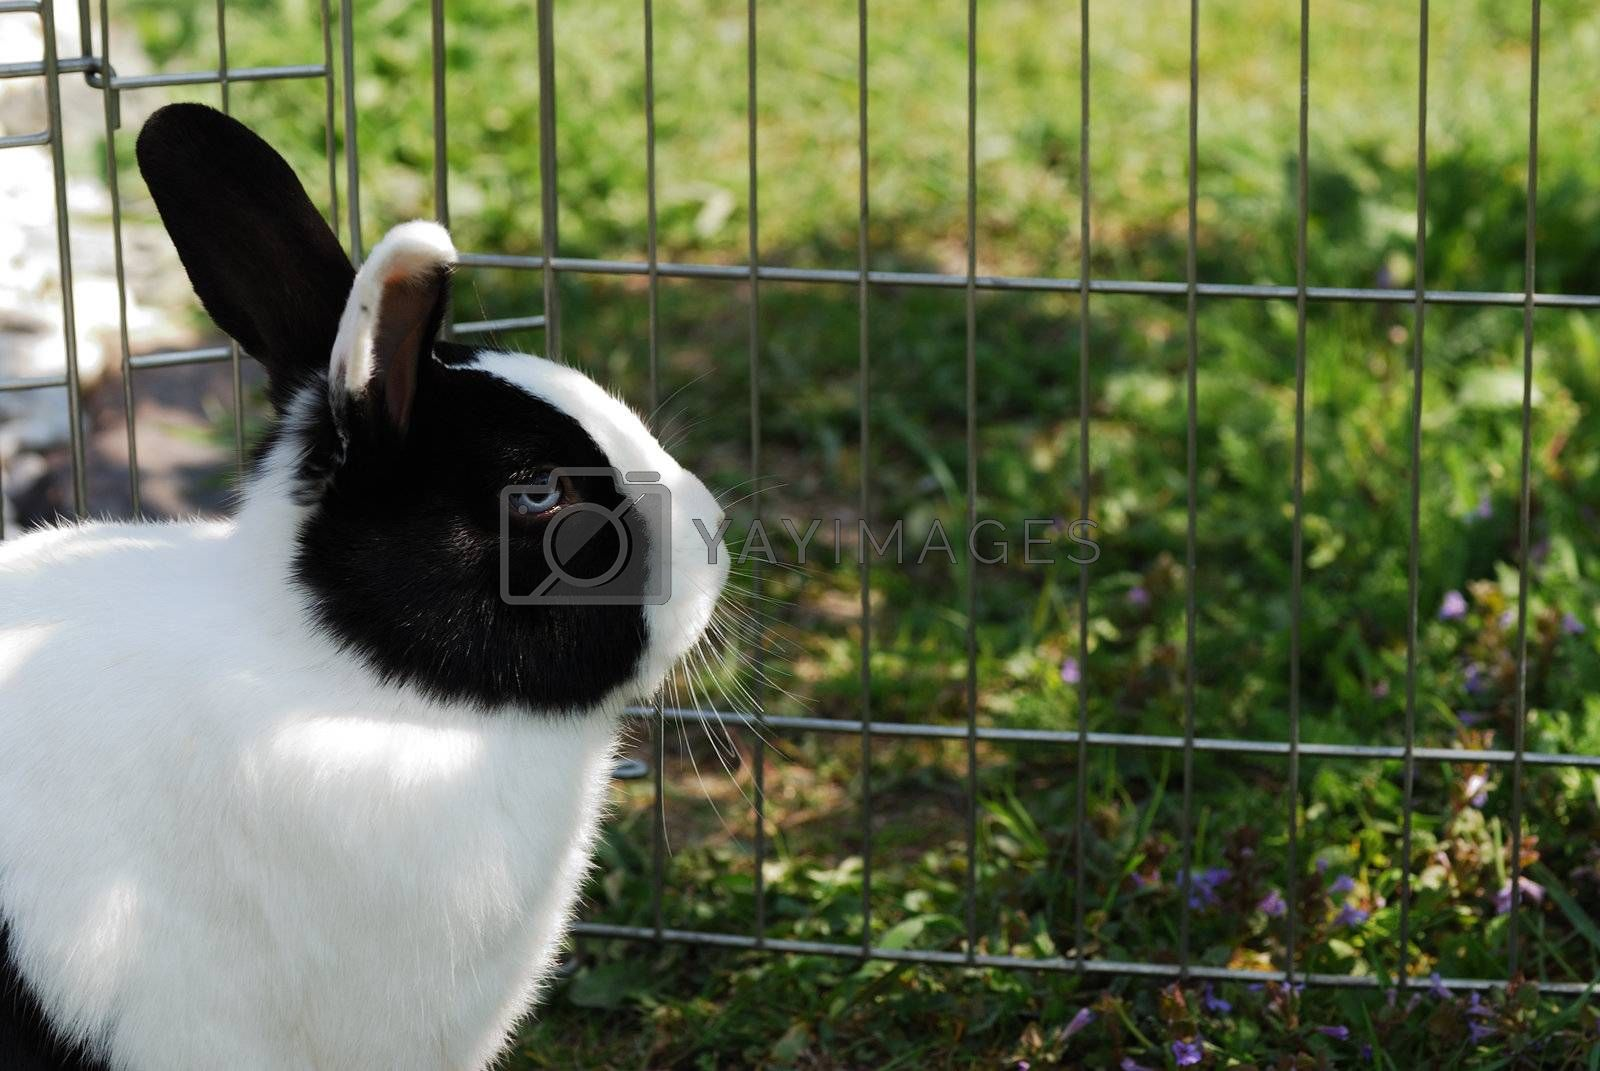 rather small black bunny looks behind grille